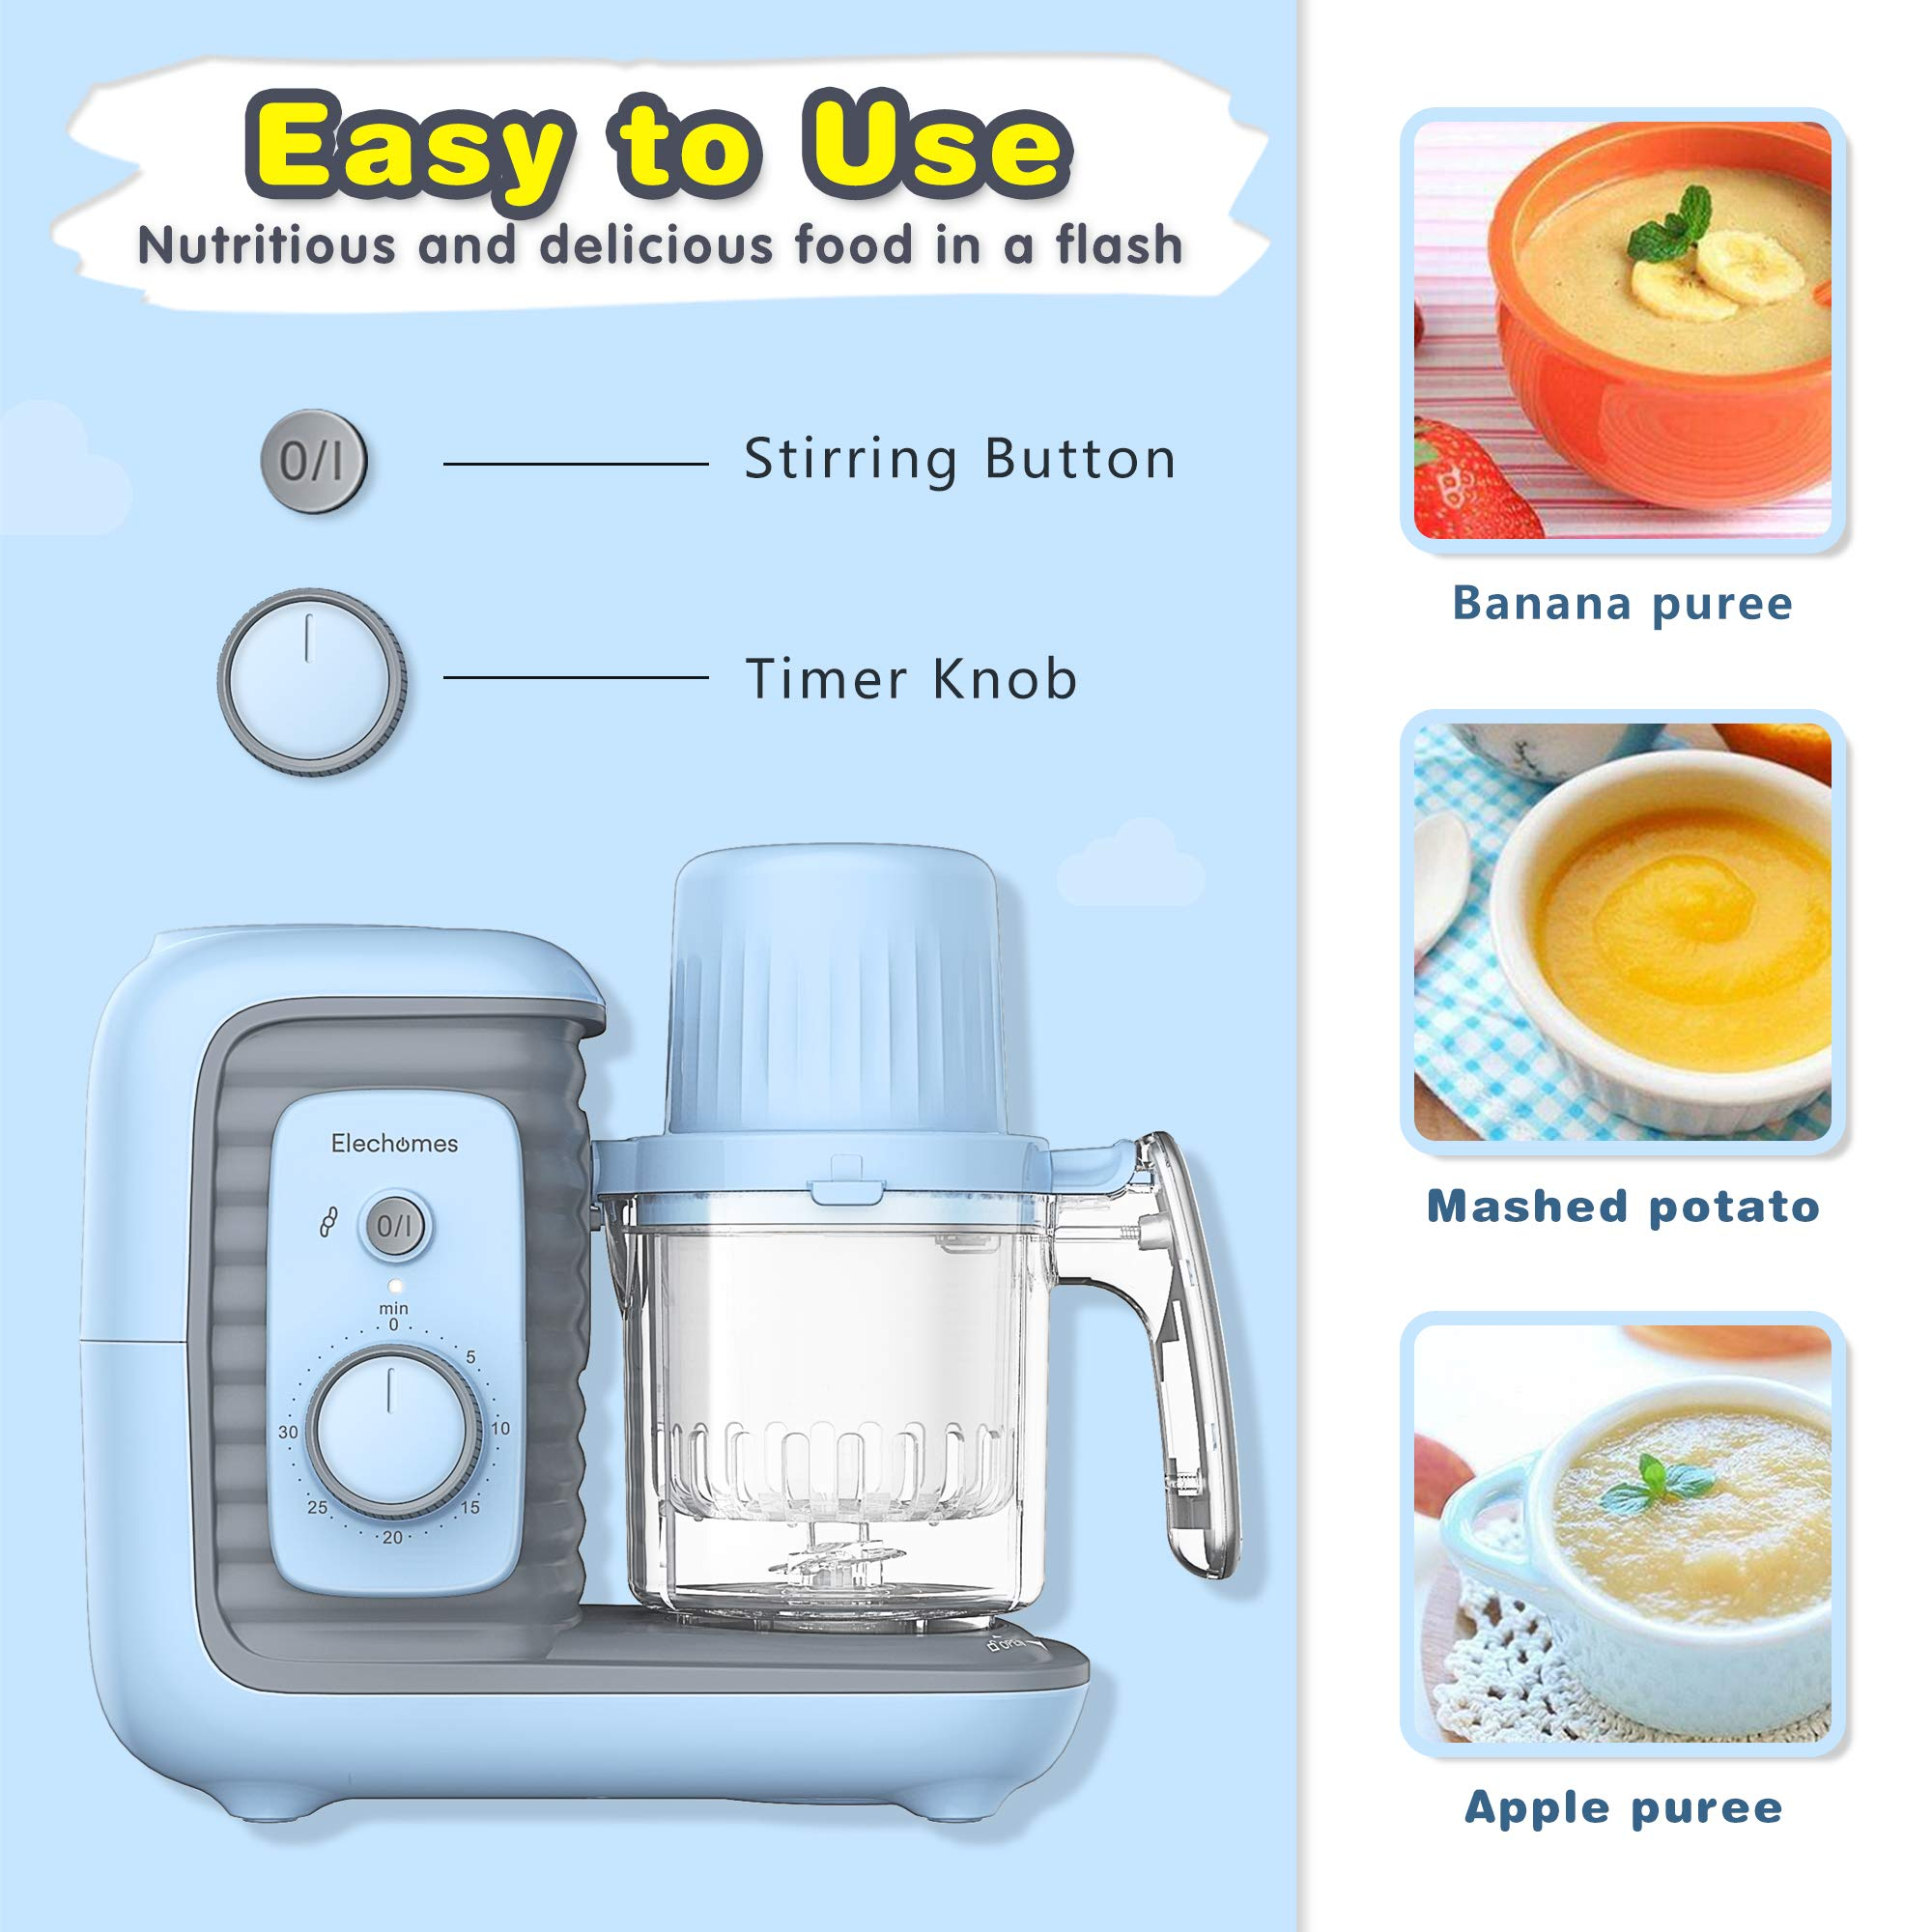 Elechomes Baby Food Maker Processor, Double Steam Basket Cooker with Timer, Blender, Steamer for Baby Infants Toddlers Food by Elechomes (Image #2)